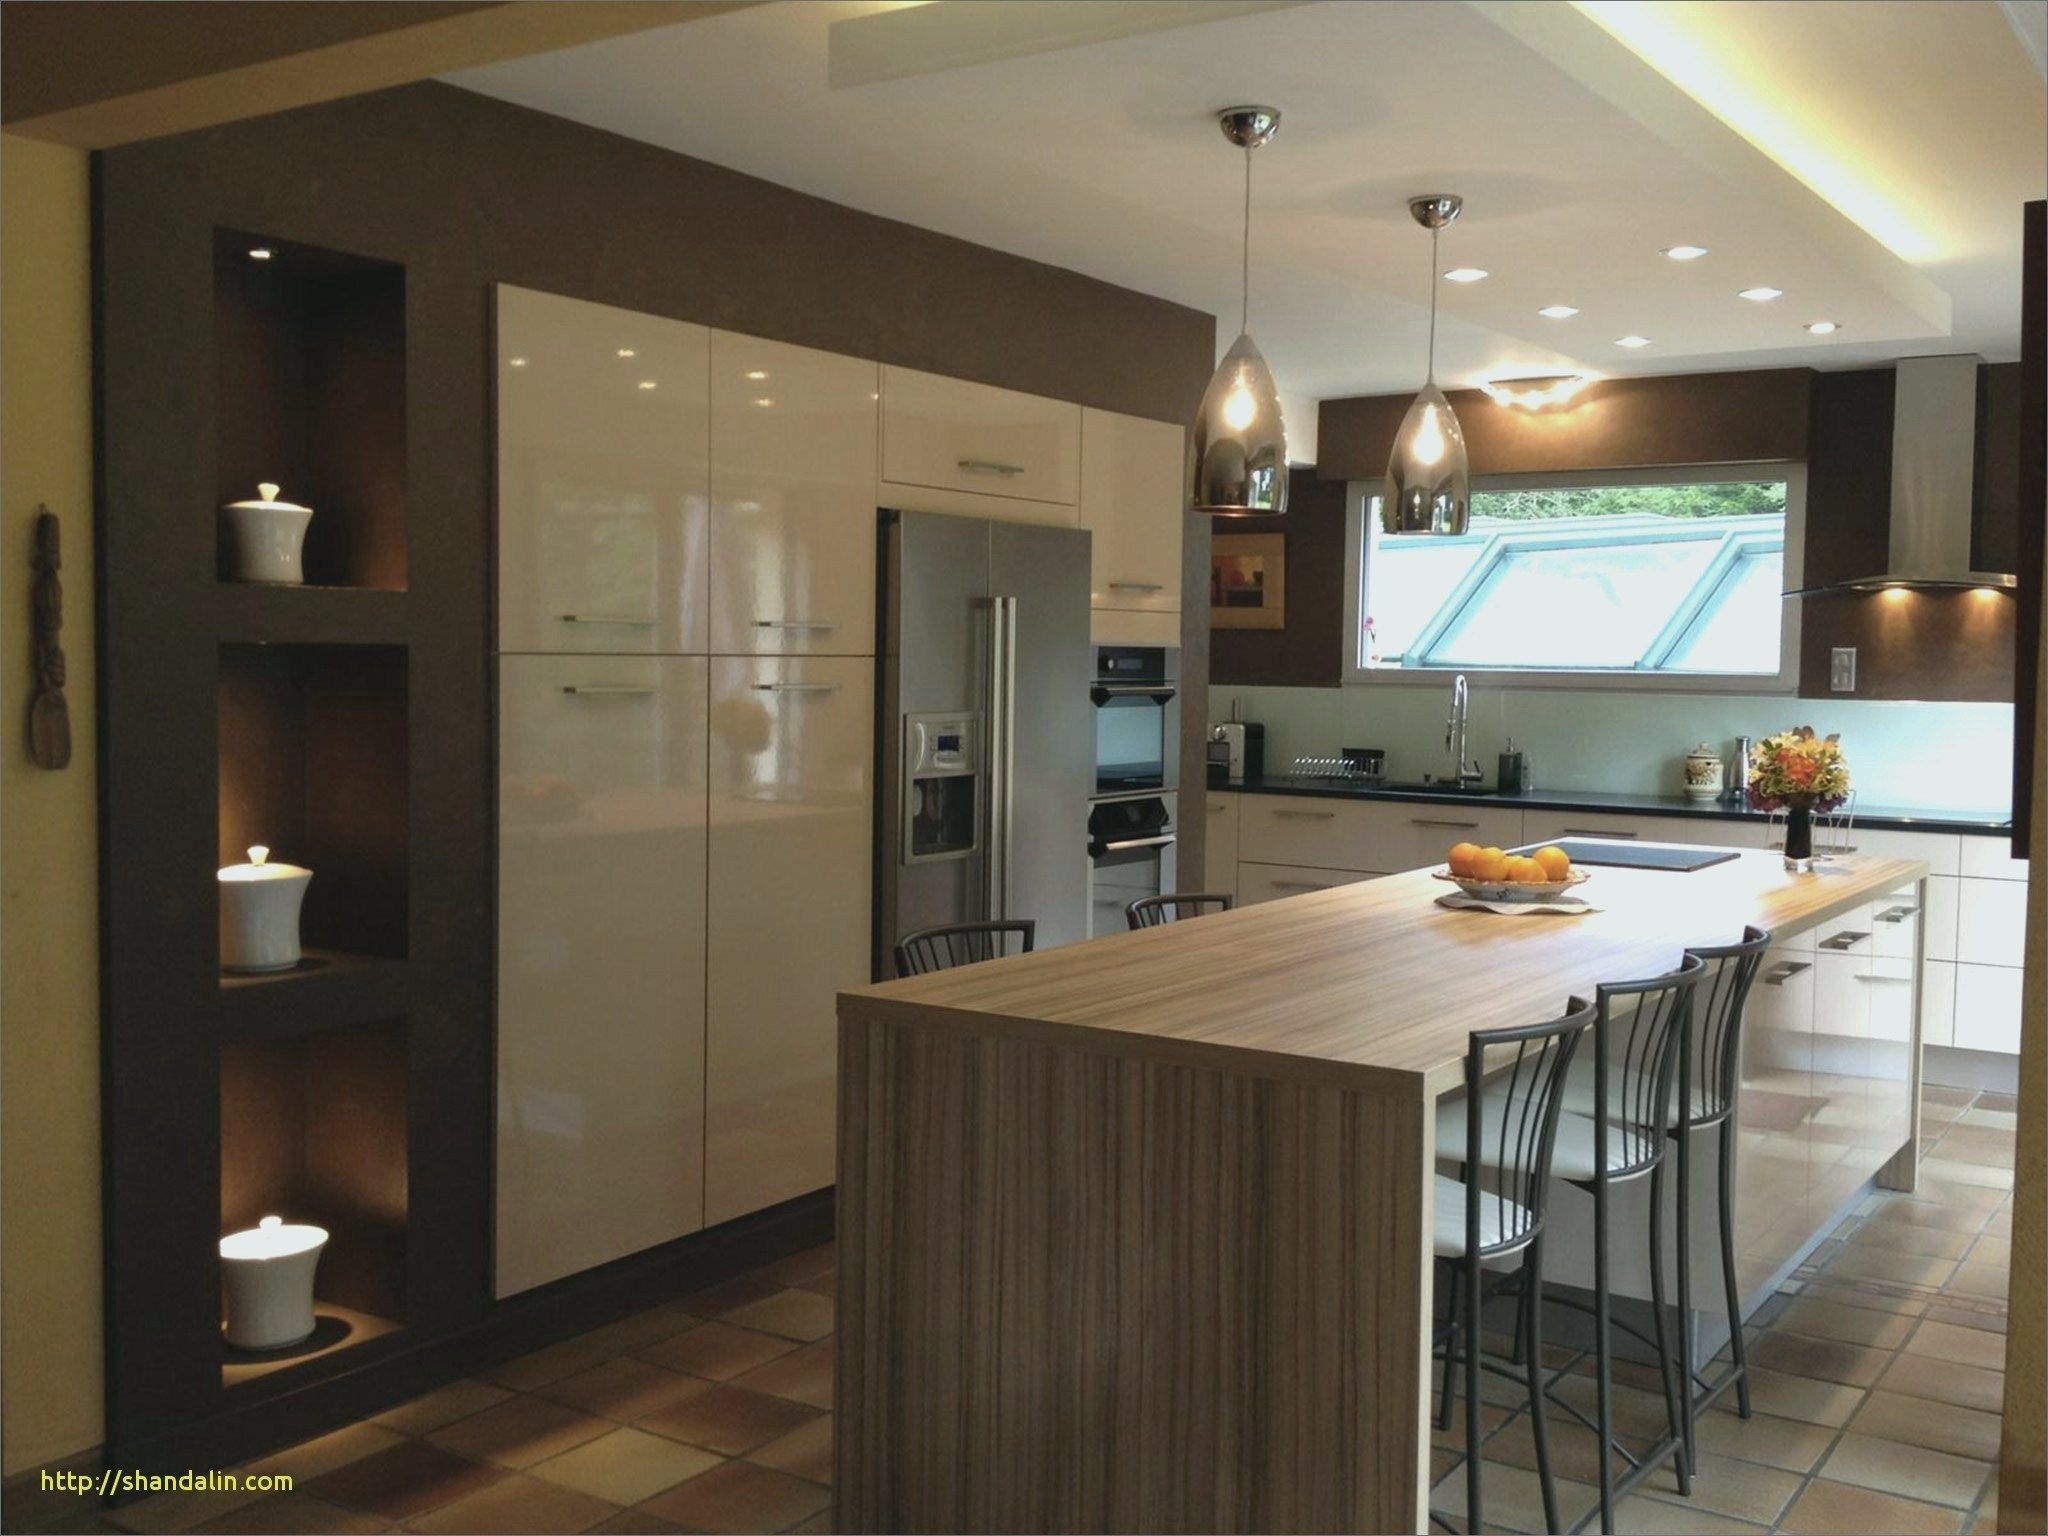 New Cuisine Luna Brico Depot  Kitchen design, Cuisine design